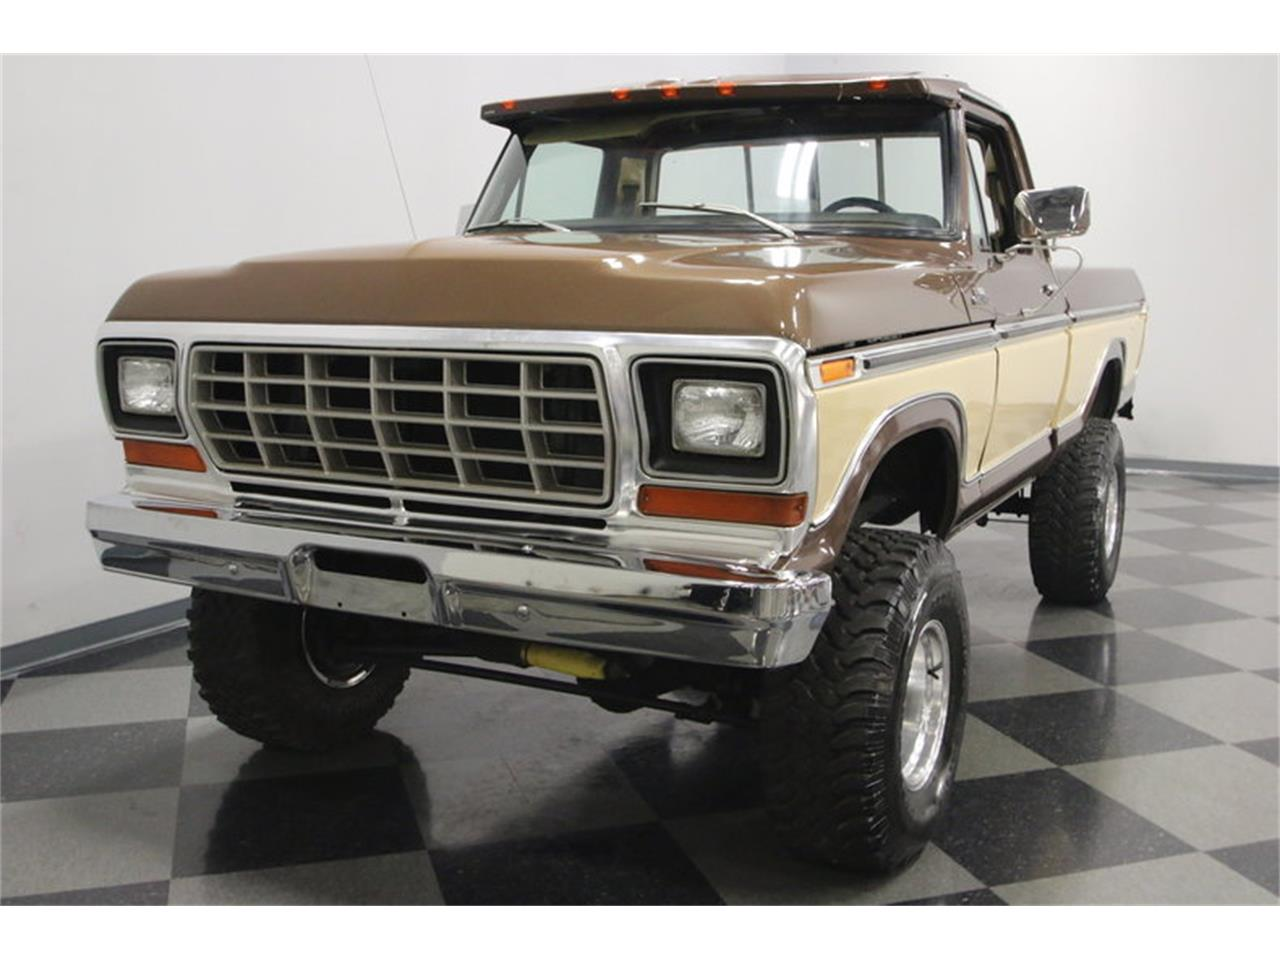 f150 1979 ford lavergne tennessee cc classic classiccars financing inspection insurance transport